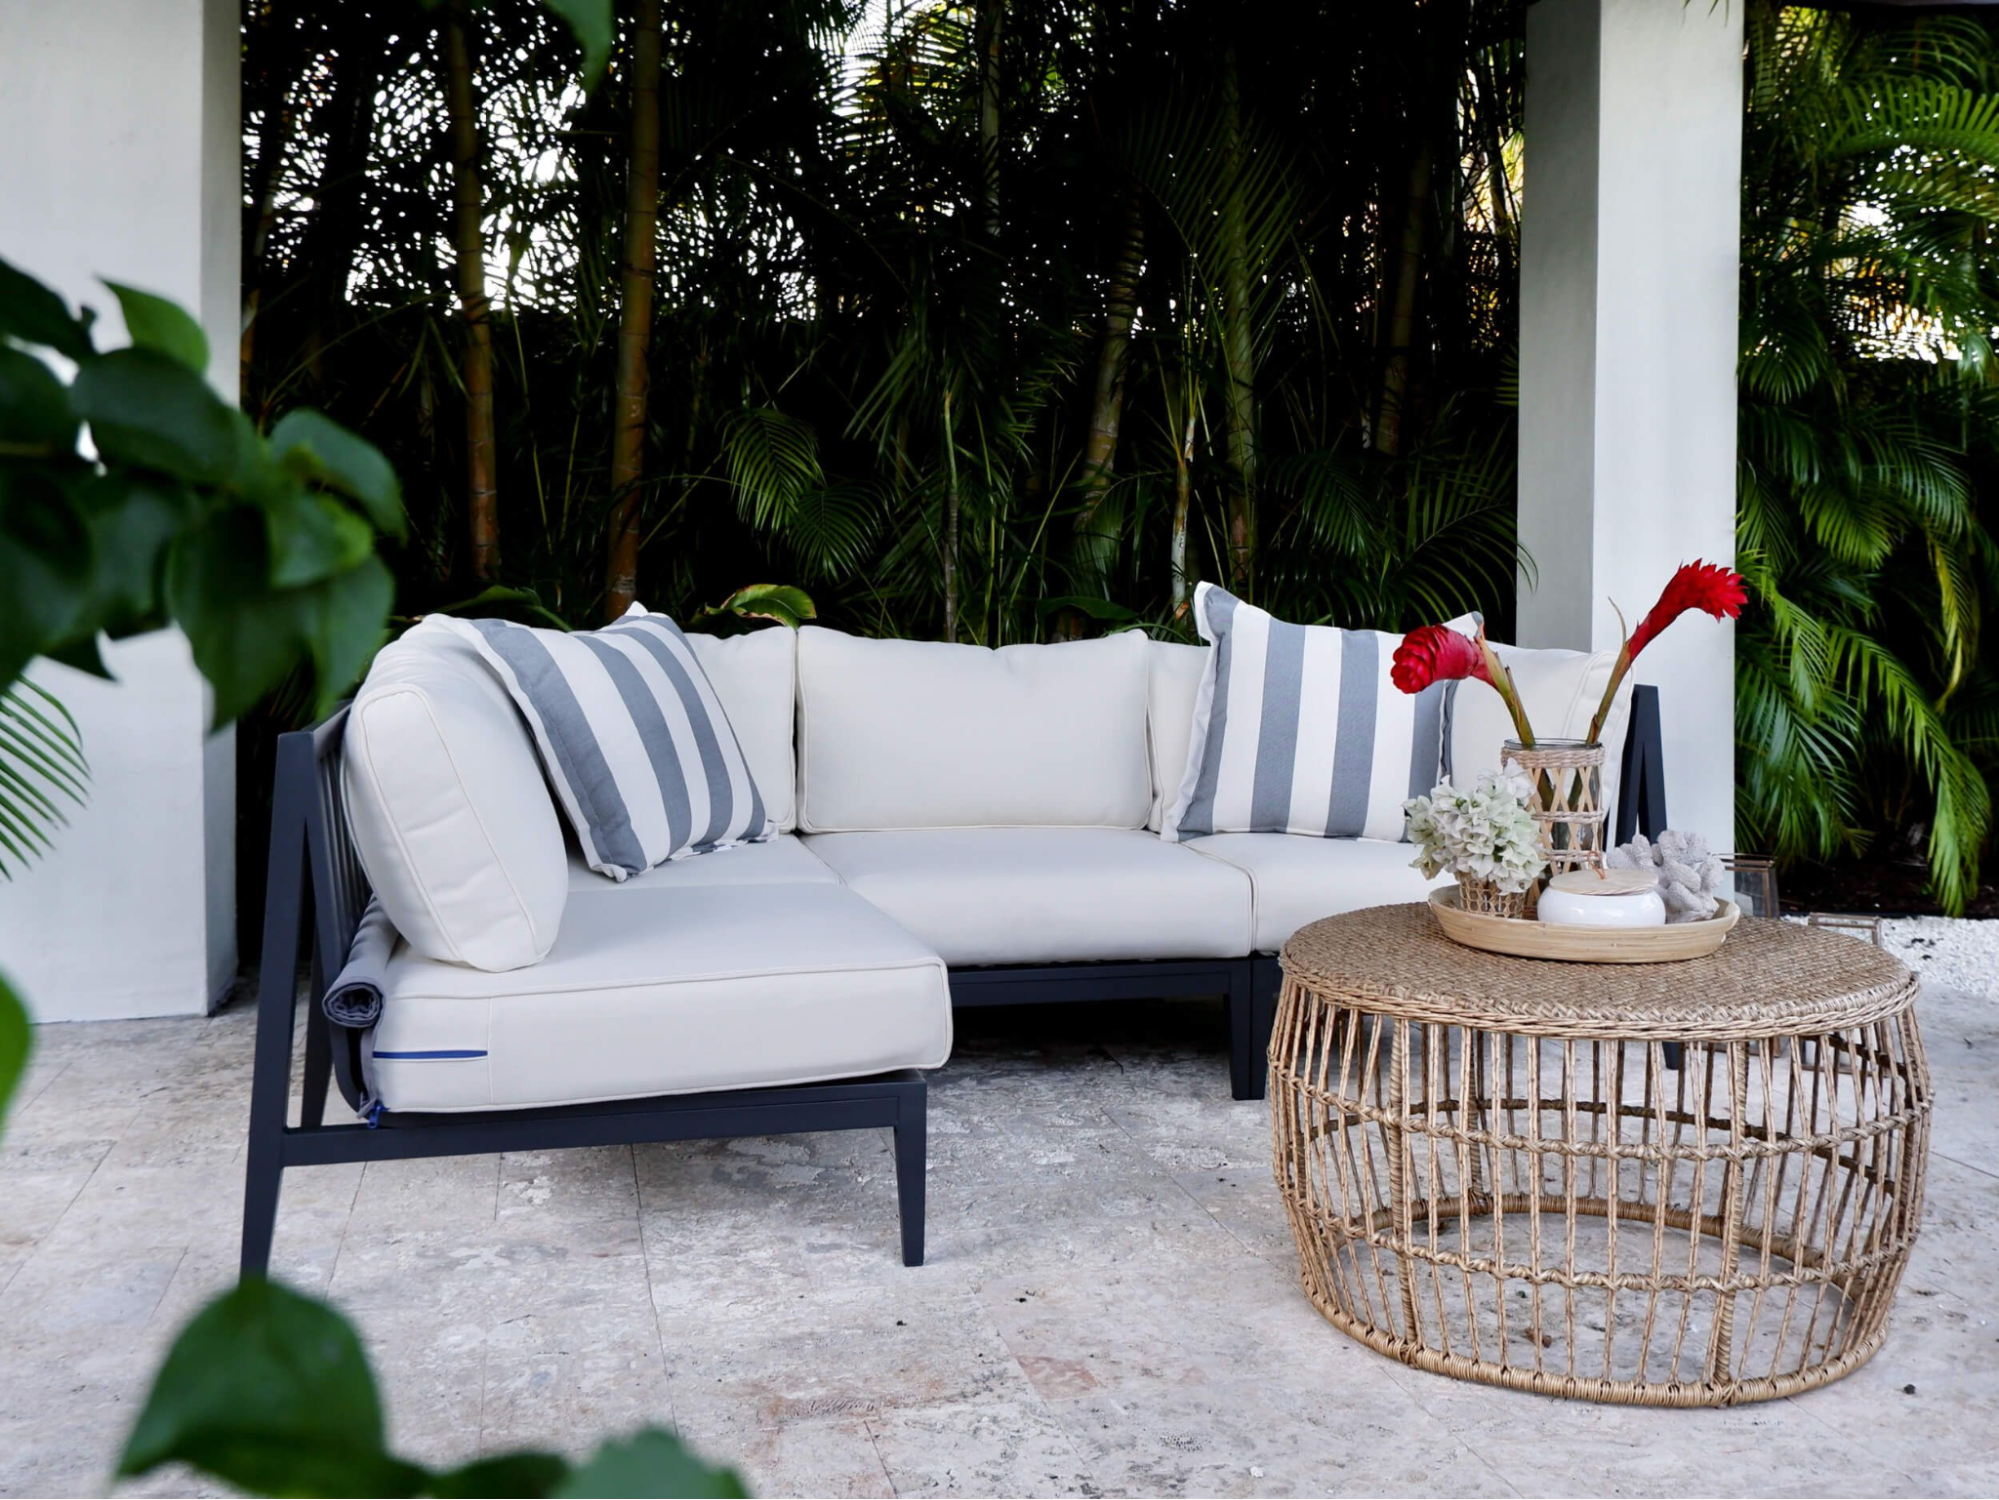 Contemporary outdoor living spaces